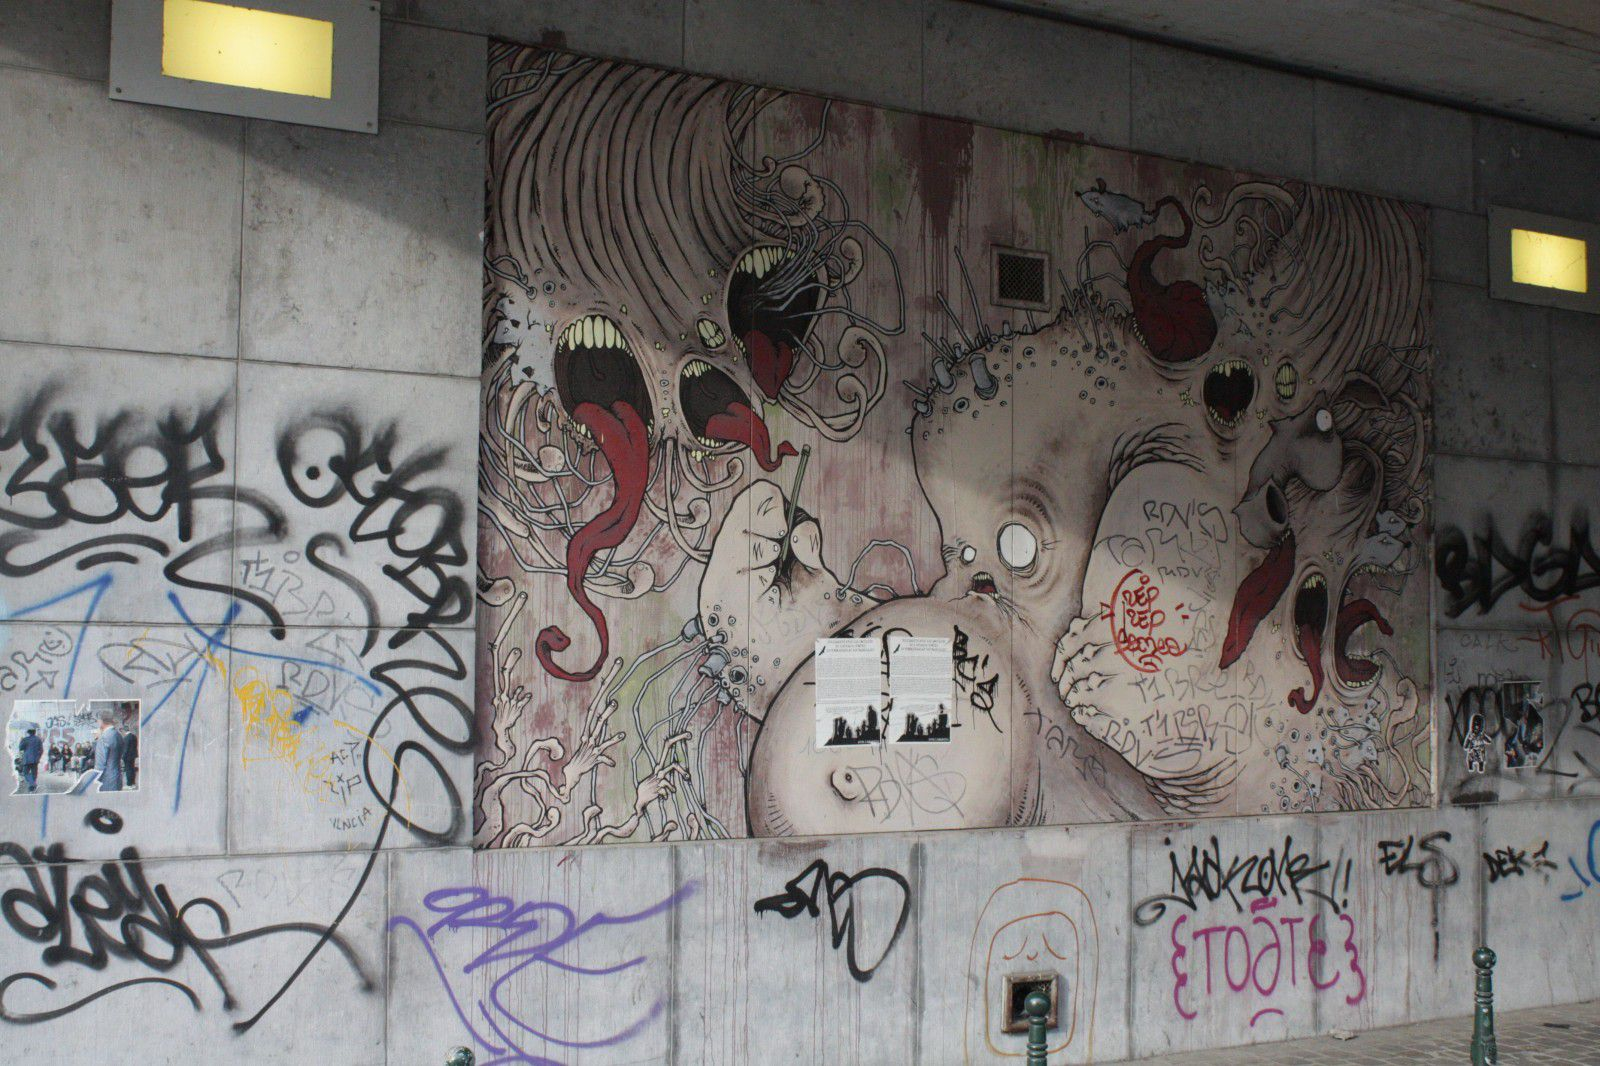 http://idata.over-blog.com/0/32/10/53/villes-geo-urbaine/Bruxelles-graff.jpg